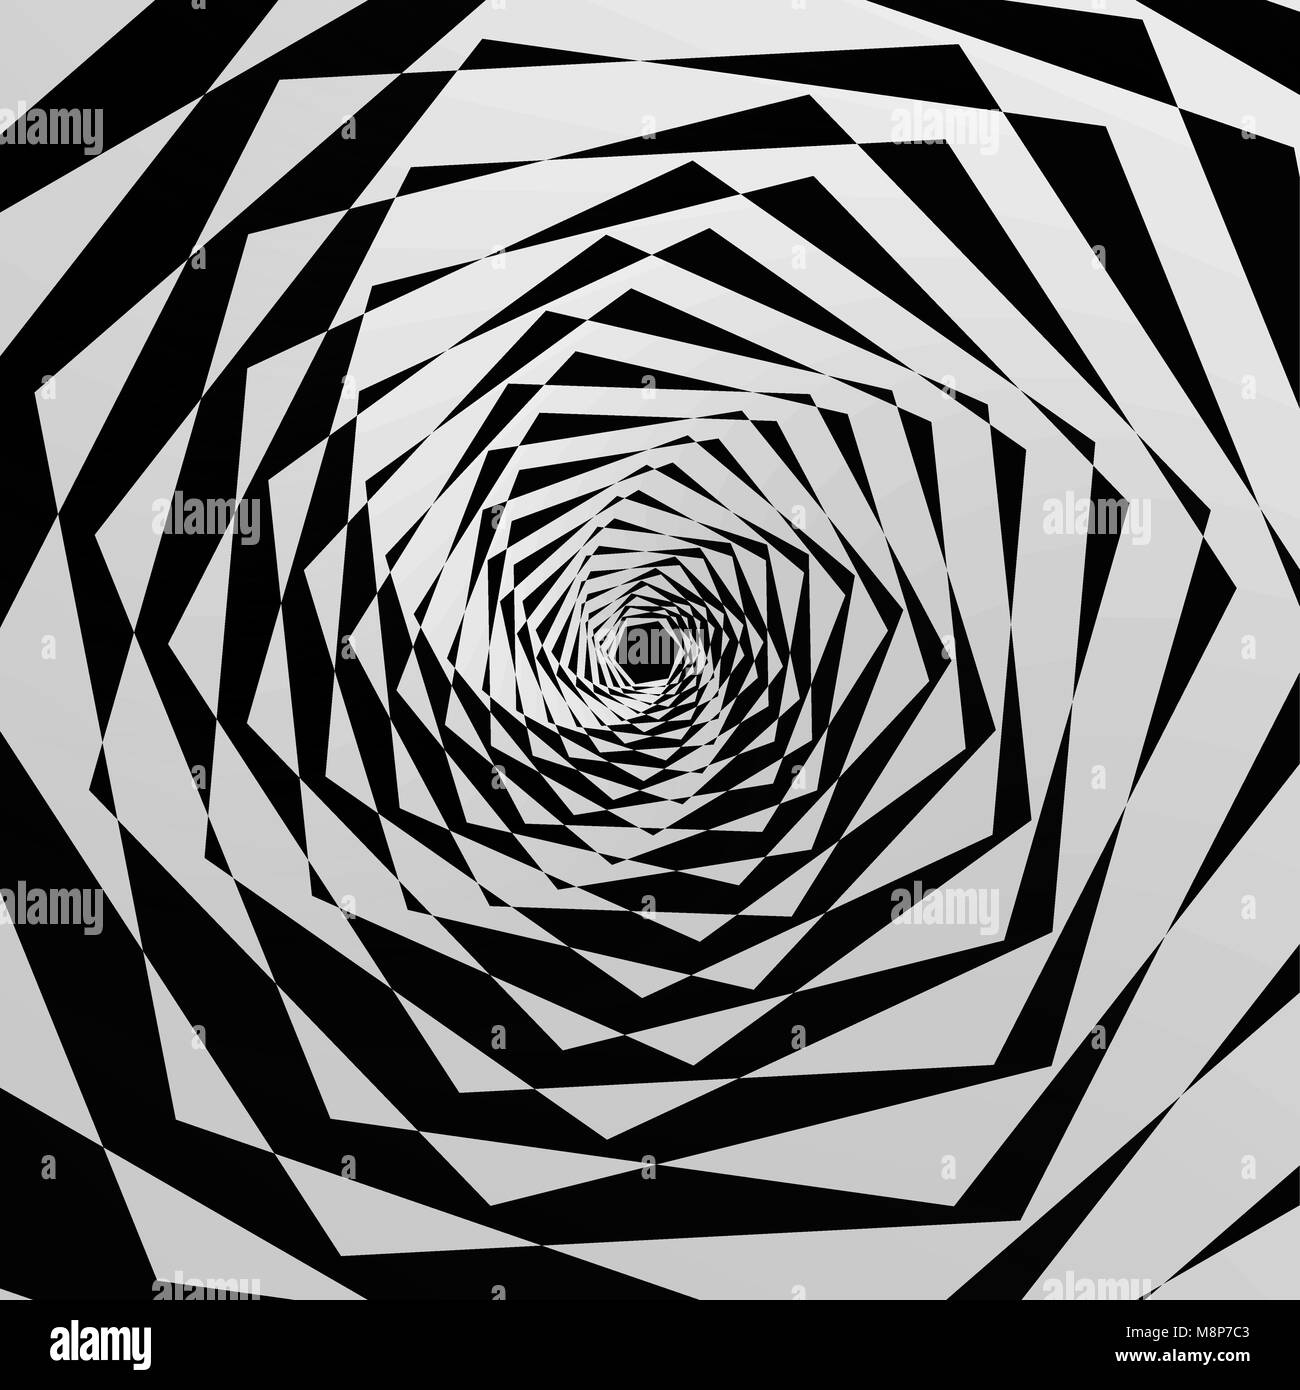 The abstract geometrical background expressing illusion of infinity. Vector illustration. - Stock Vector